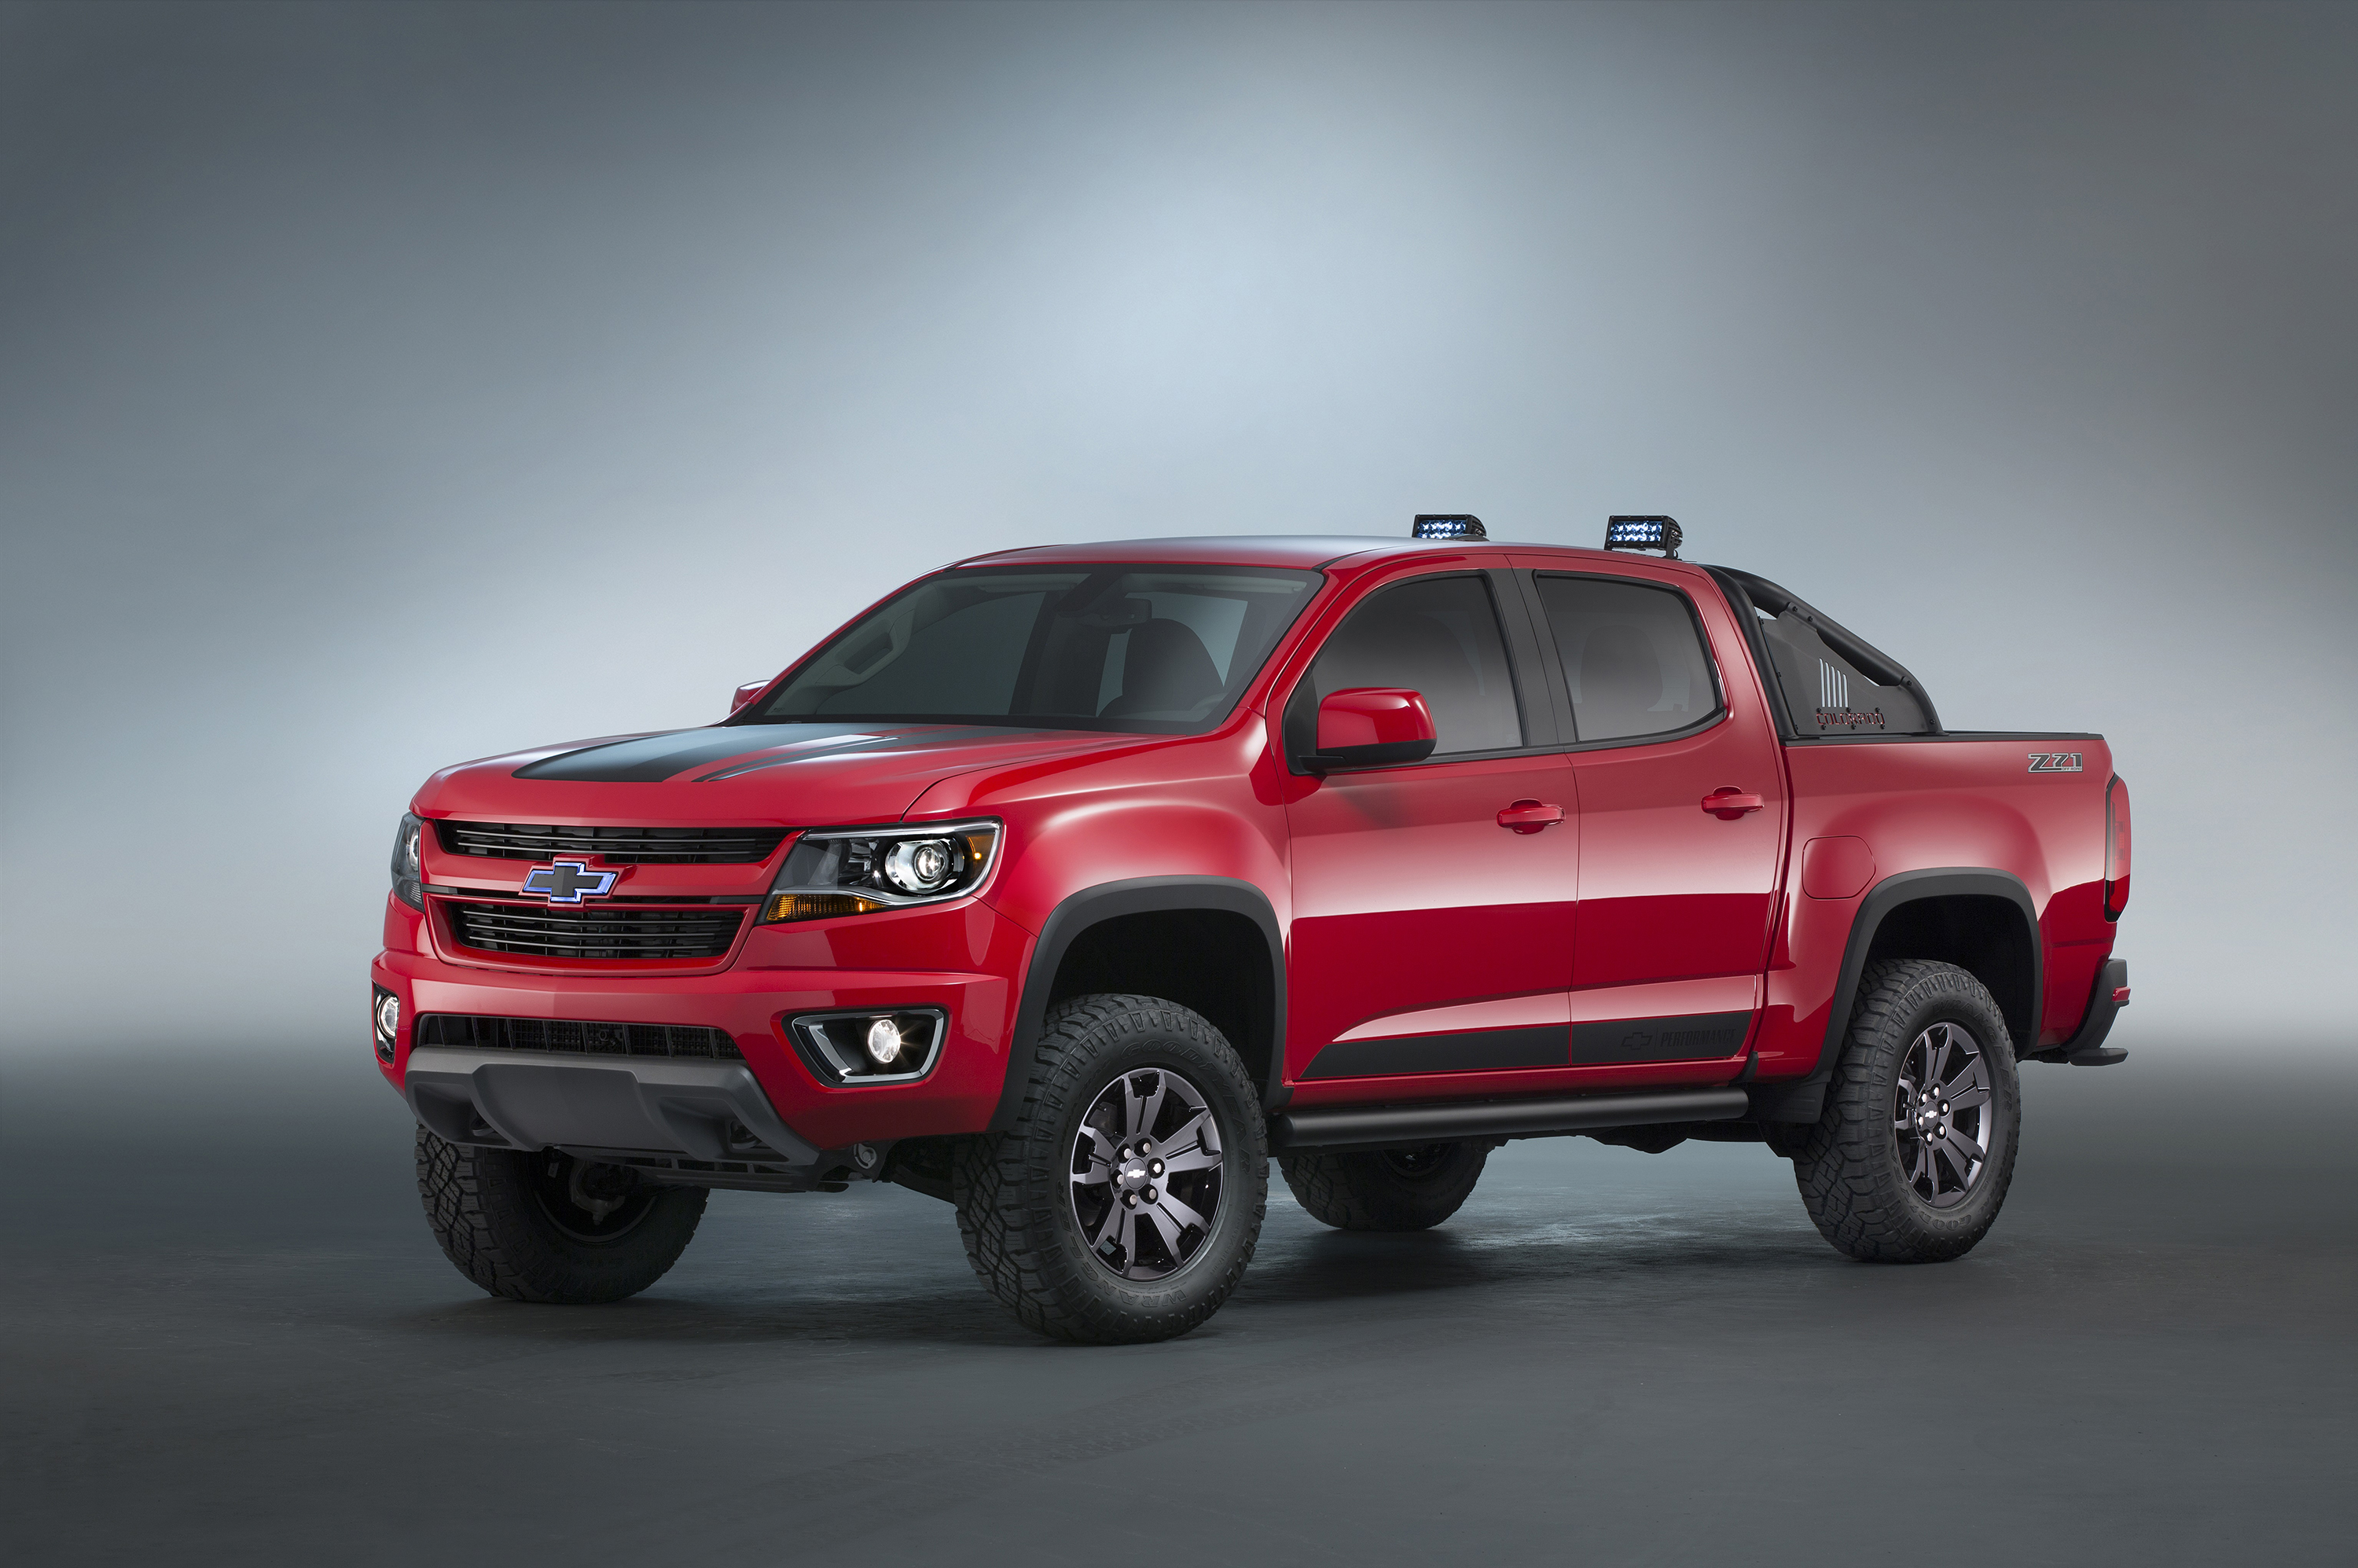 small img mean nerve t chevrolet doesn colorado without